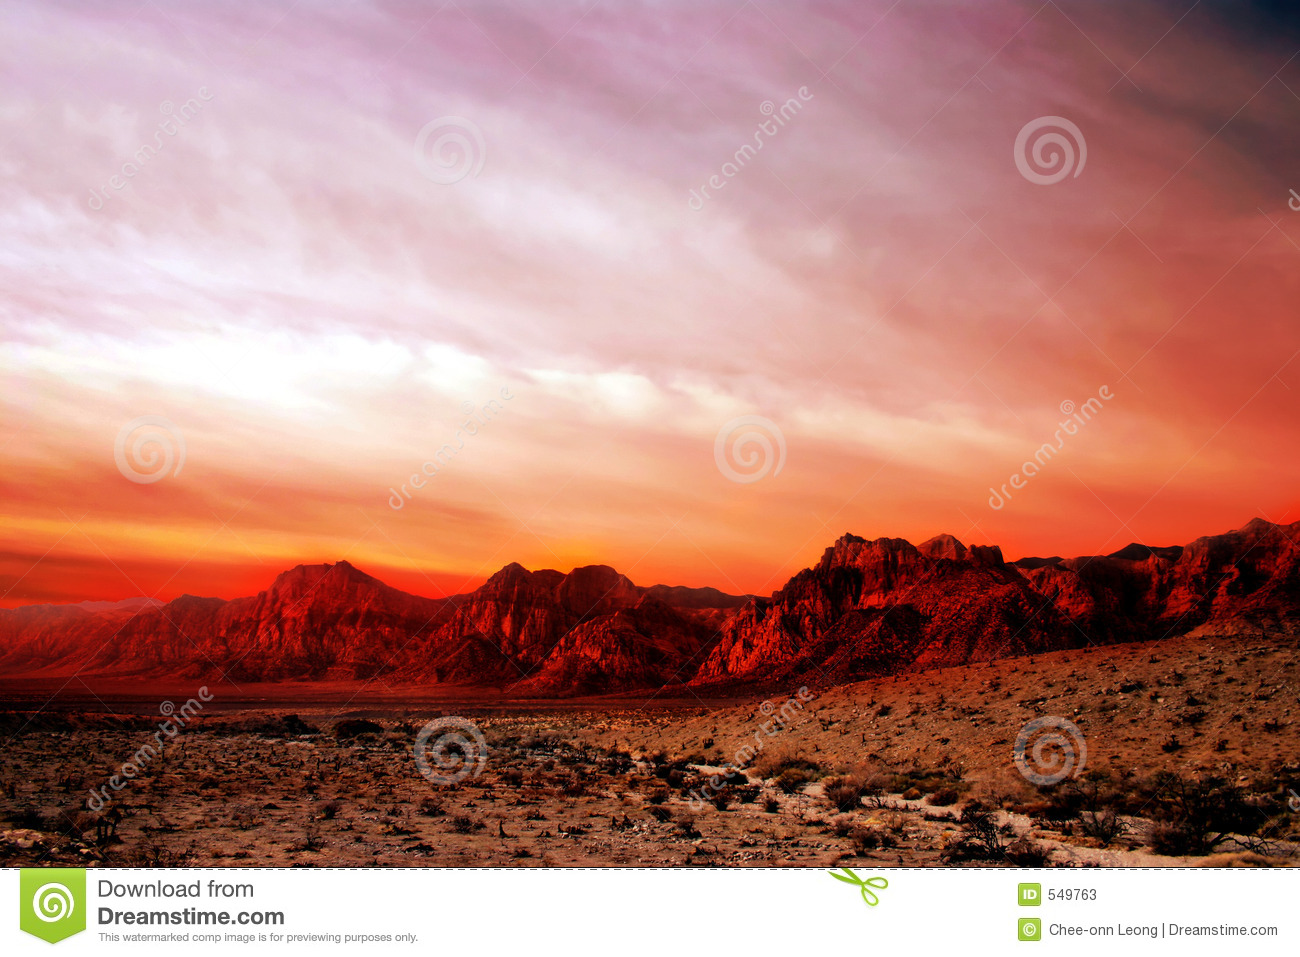 Red Rock Canyon clipart #8, Download drawings